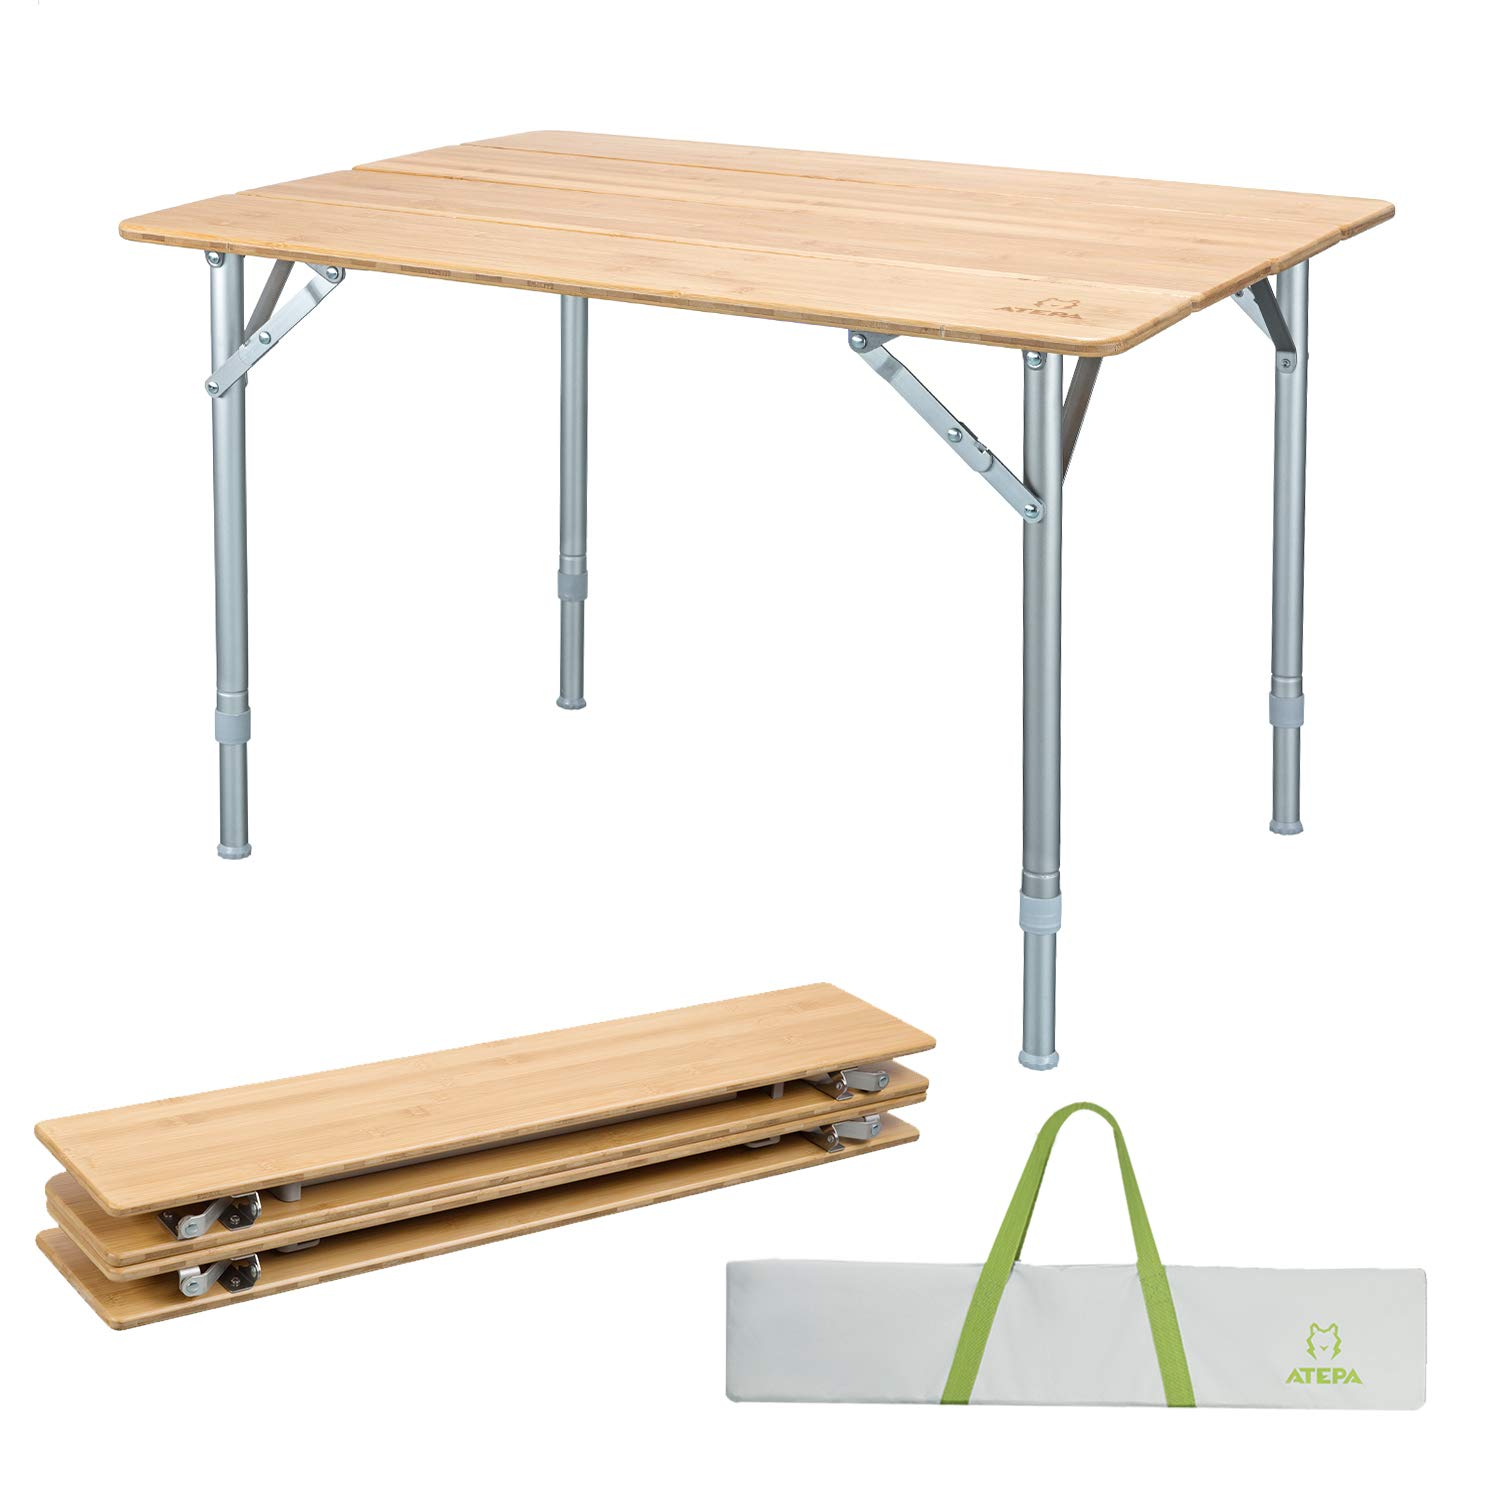 ATEPA Bamboo Folding Camping Table with Carrying Bag, Adjustable Height Legs Camp Table, Compact Lightweight Foldable Portable Outdoor Travel Picnic Table, 31.5 × 23.6× 17-25.6 Inches,11.5lbs by ATEPA